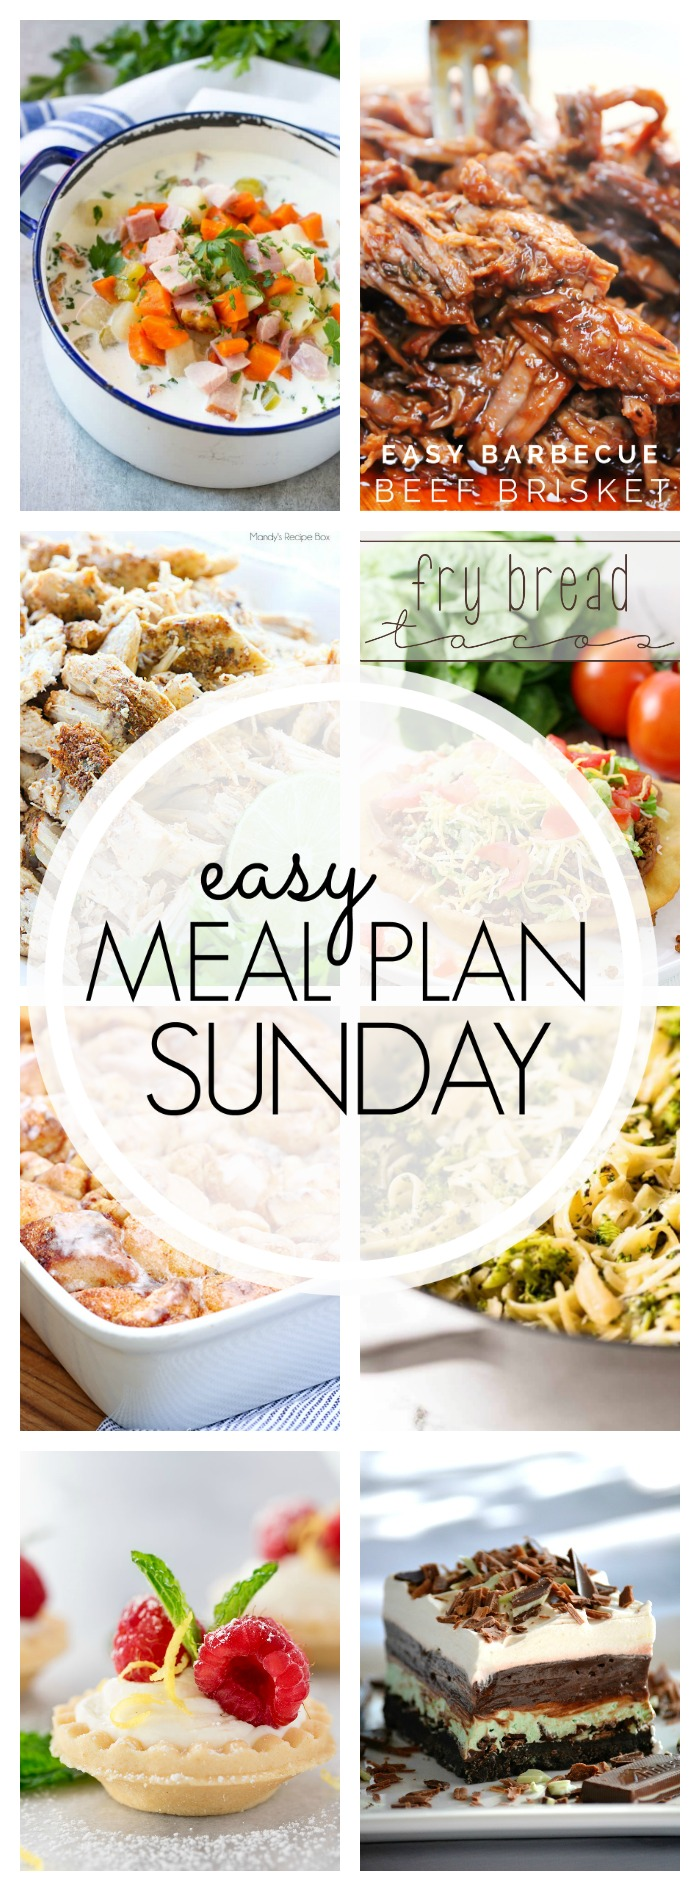 Easy Meal Plan Sunday #89